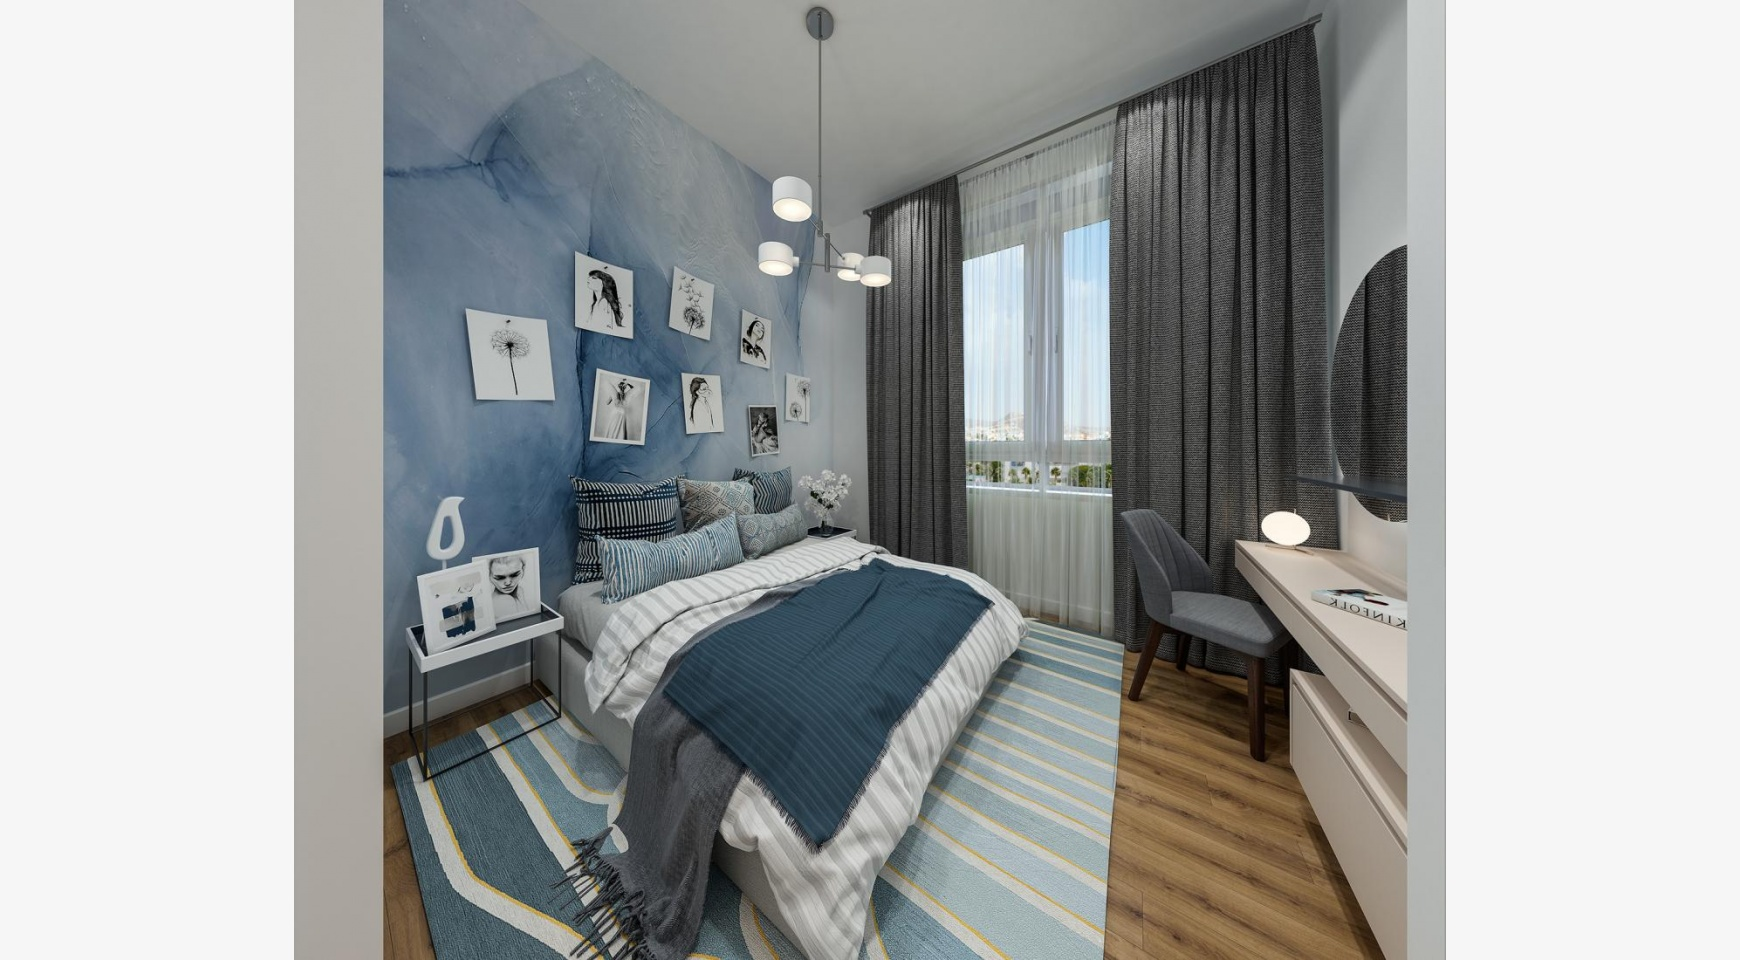 Urban City Residences, Block B. New Spacious 3 Bedroom Apartment 301 in the City Centre - 10